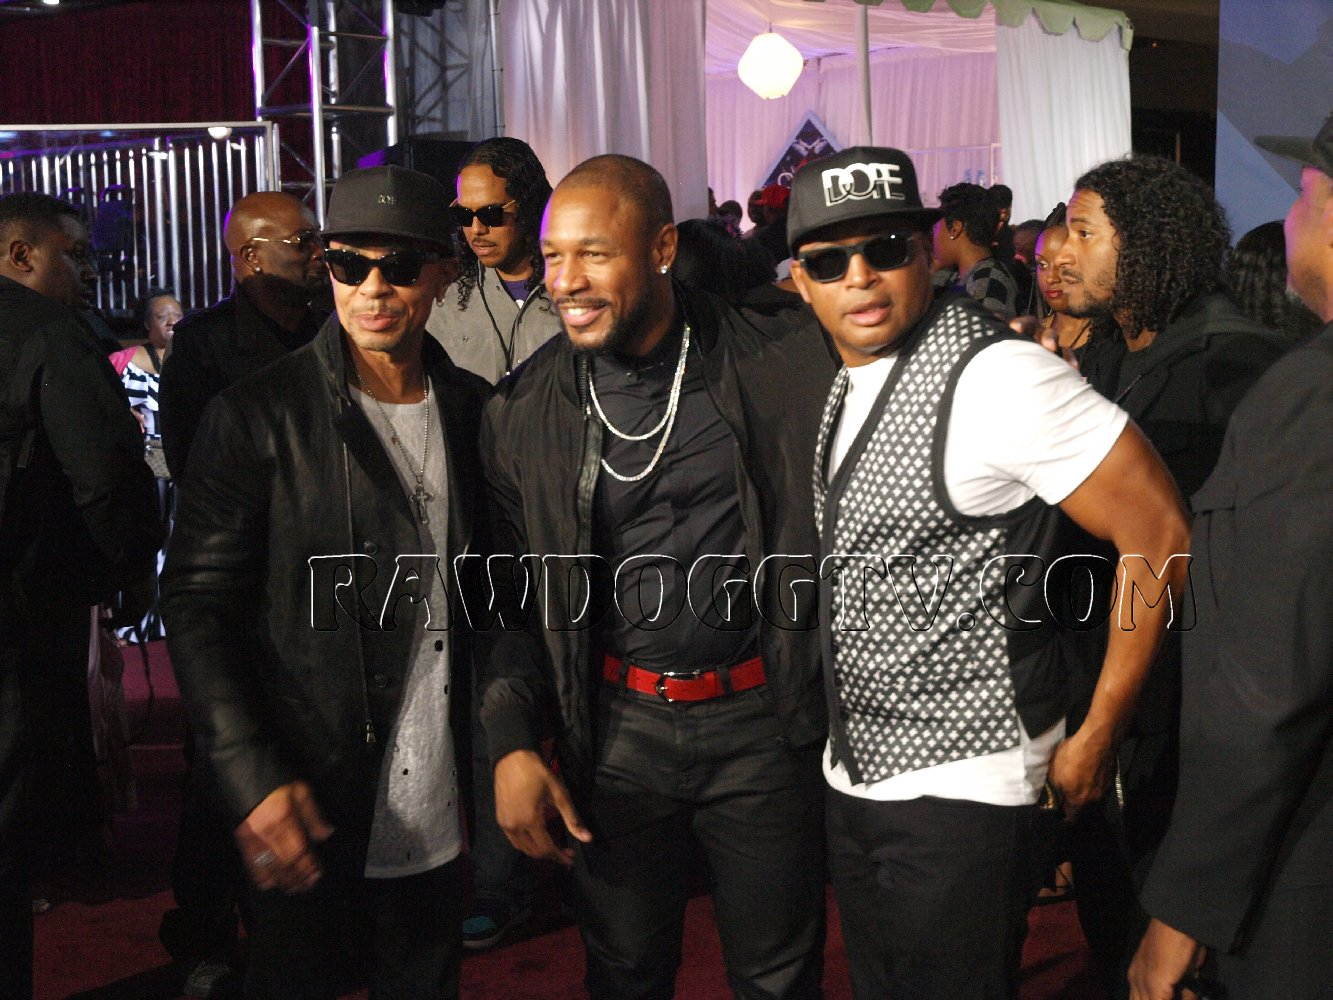 soul-train-music-awards-2016-photos-air-date-nov-27th-bet-centric-pr-mobilewire-305-490-2182-41